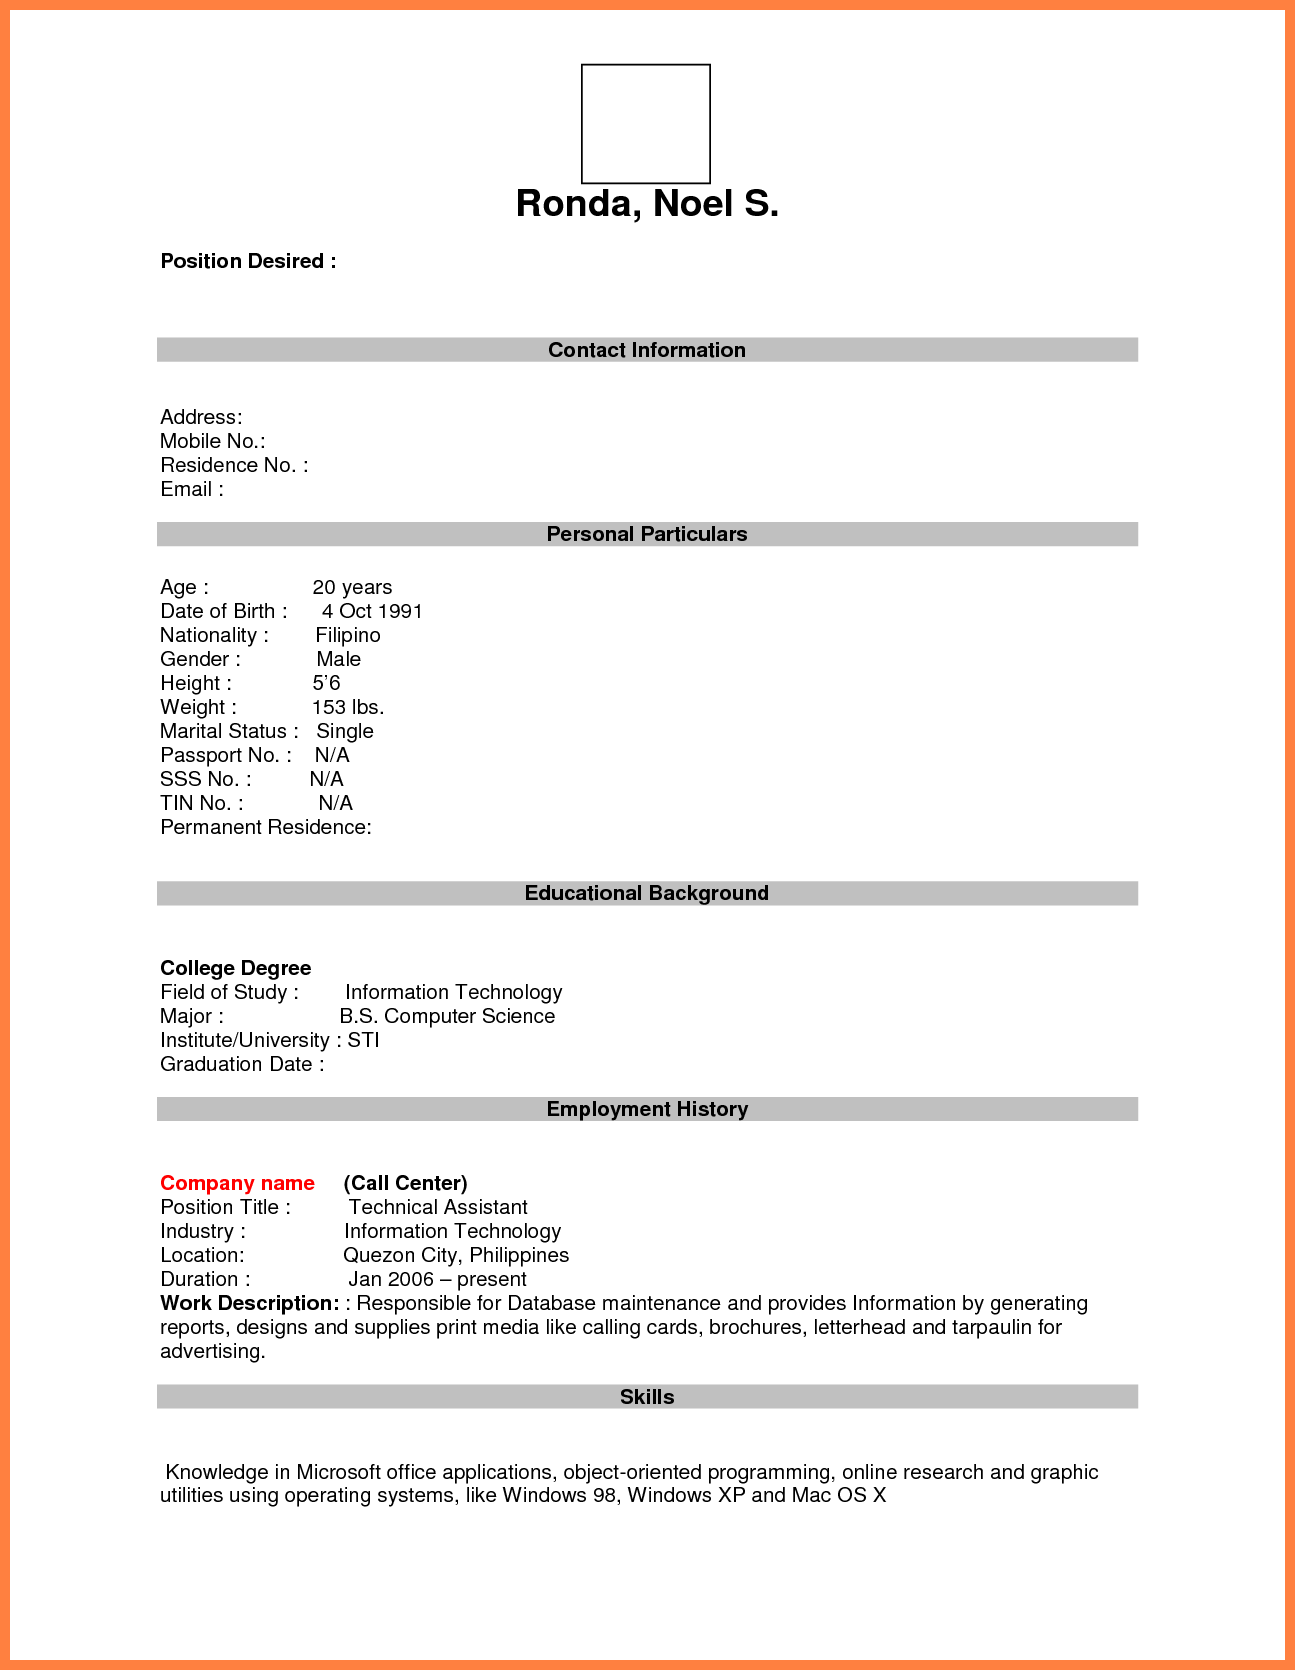 format for job application pdf basic appication letter blank resume form bussines proposal first time free - Blank Resume Template